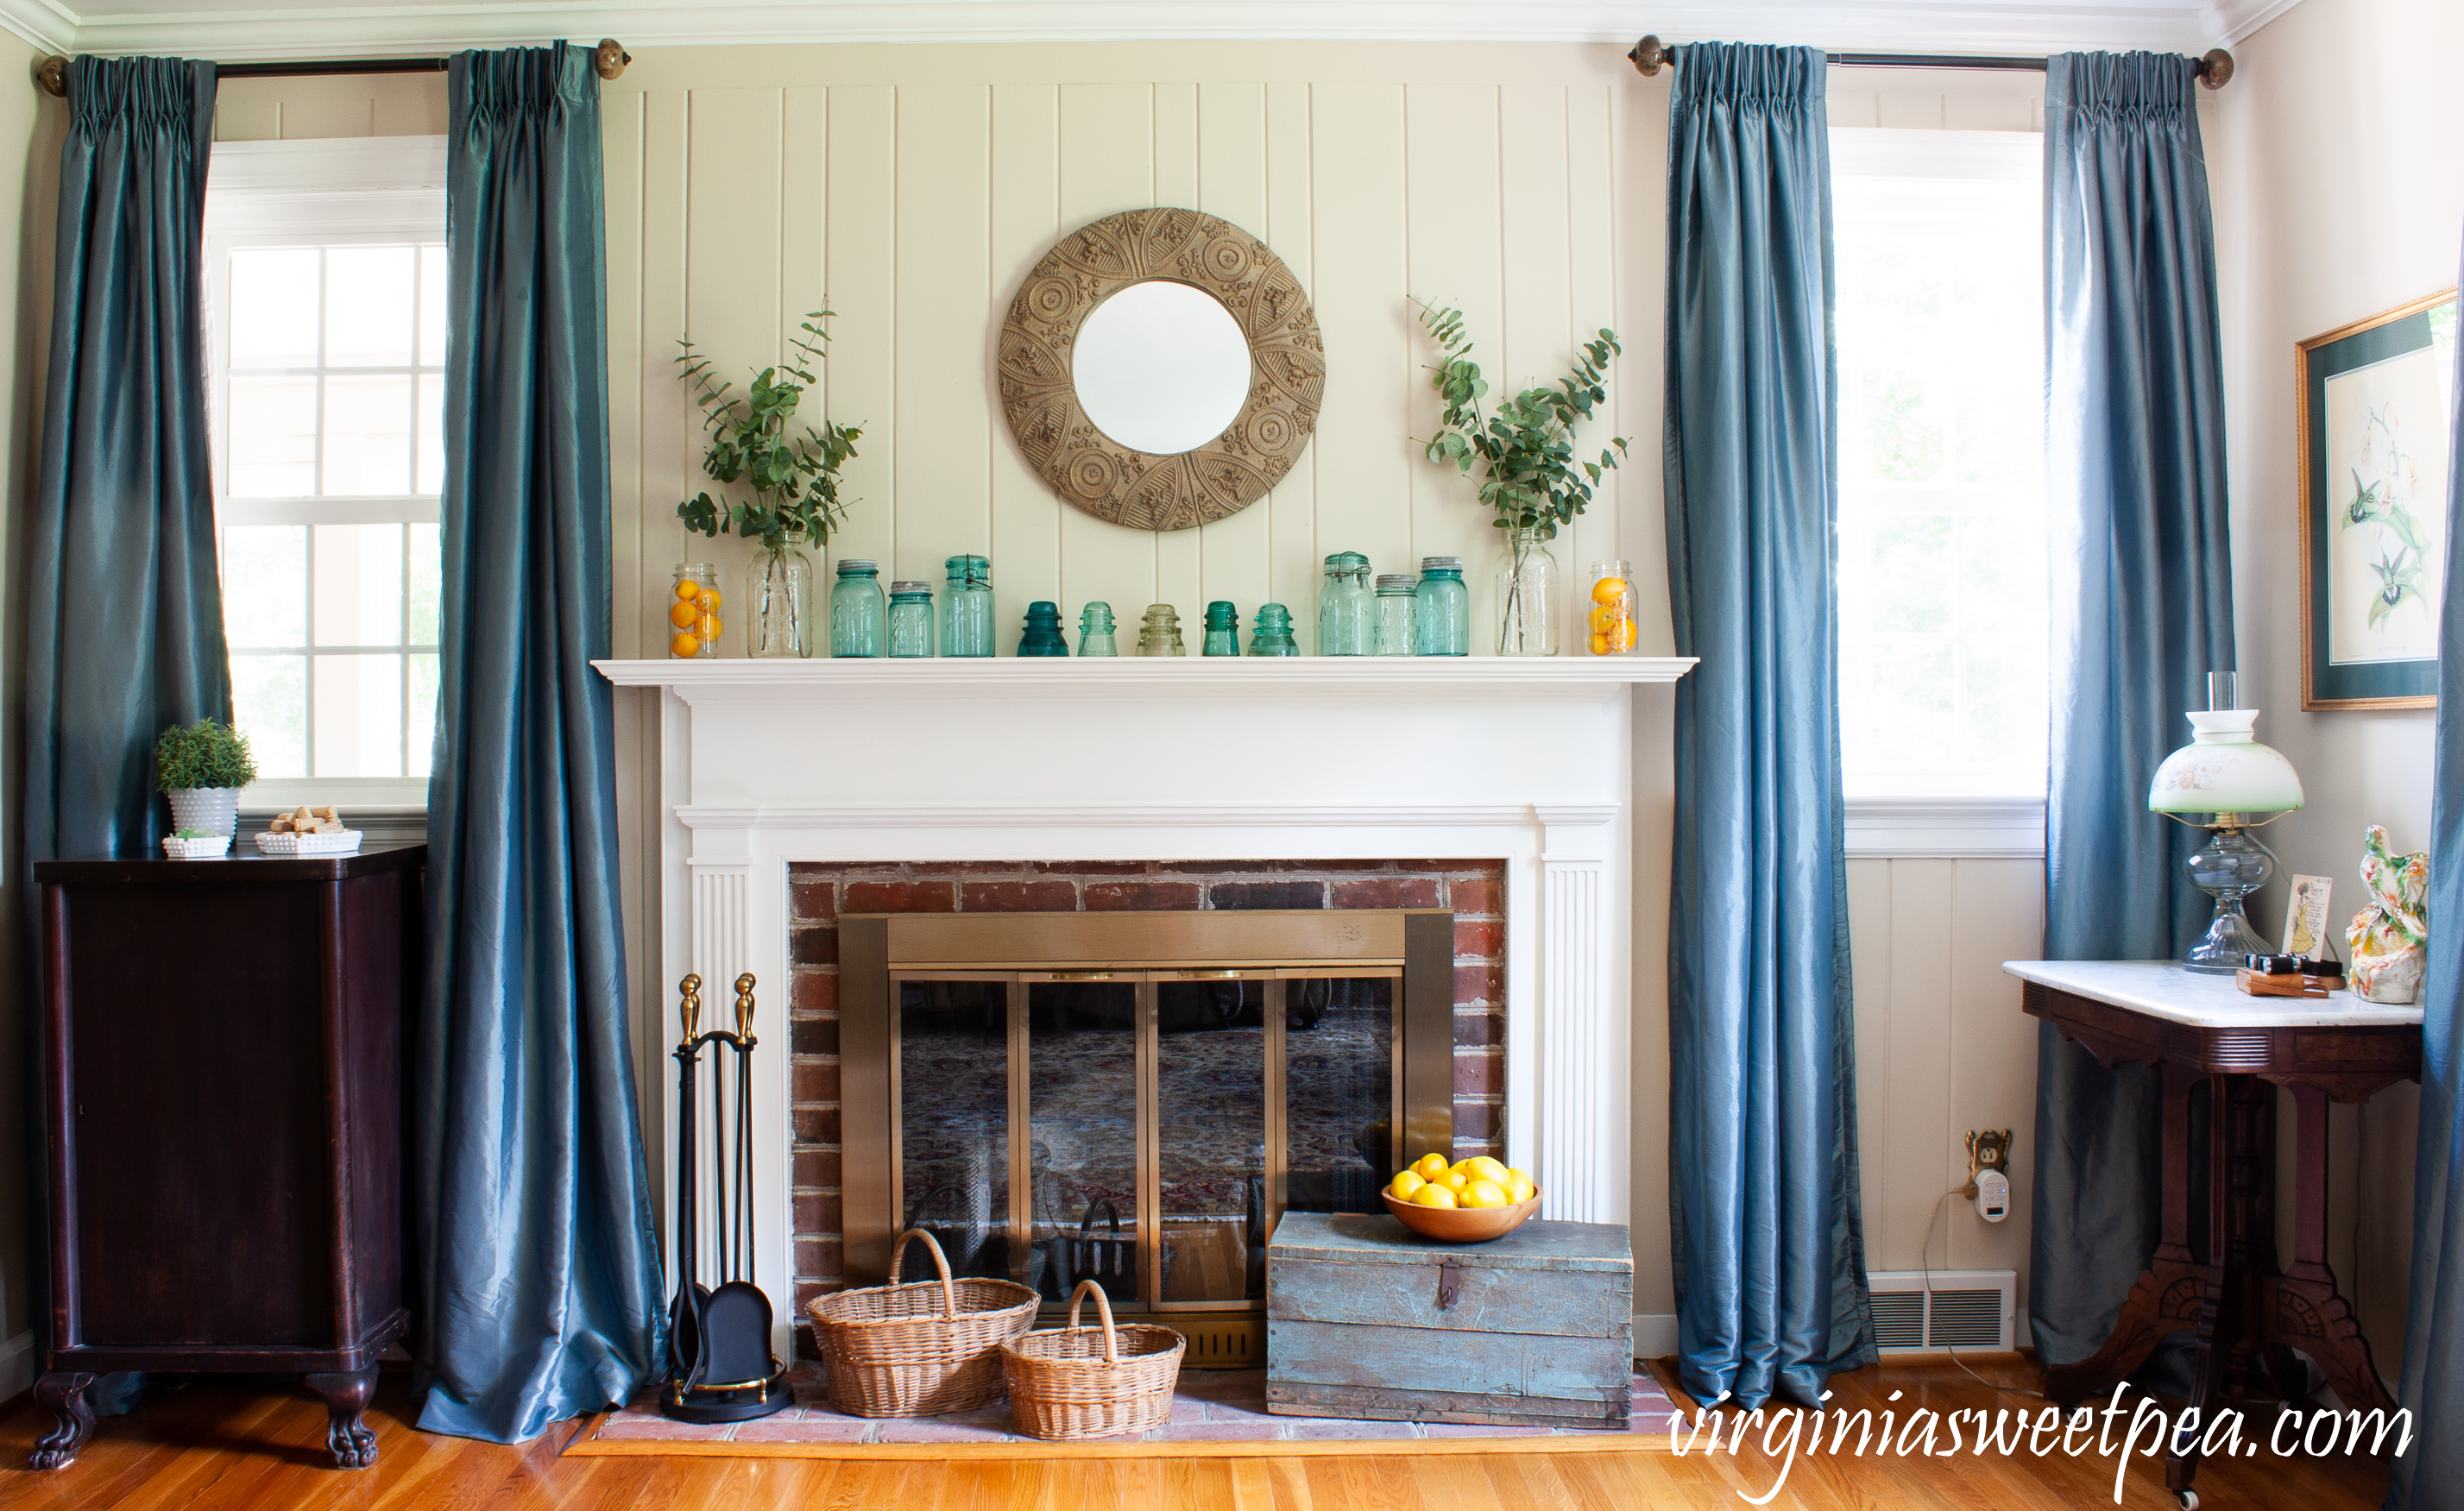 Summer decorations in a formal living room.